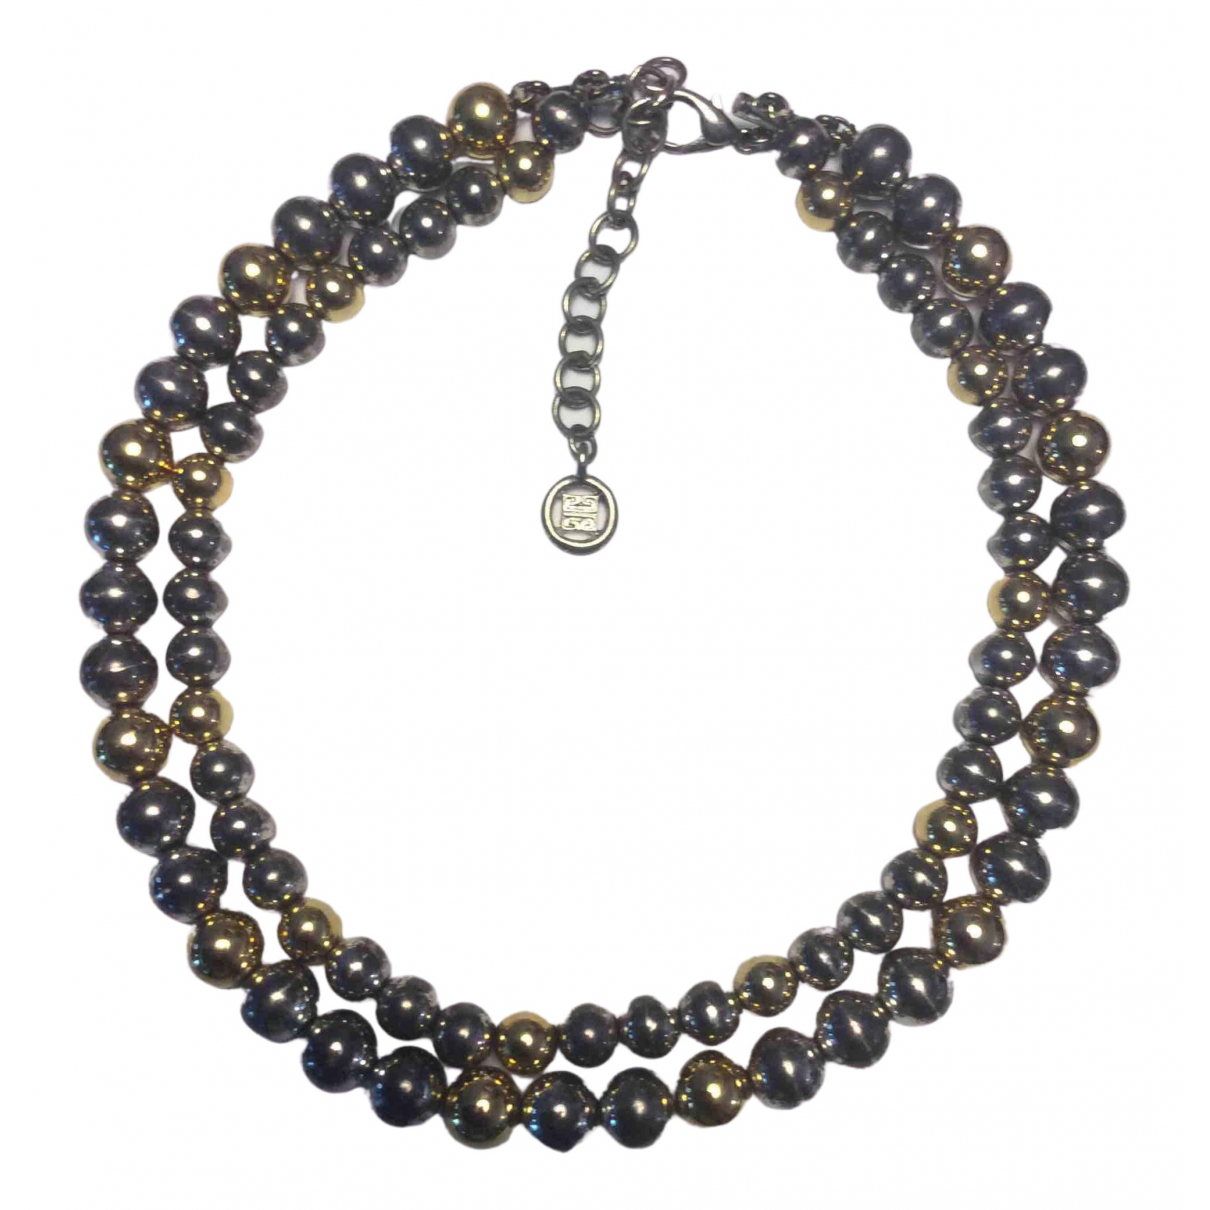 Givenchy N Metal necklace for Women N